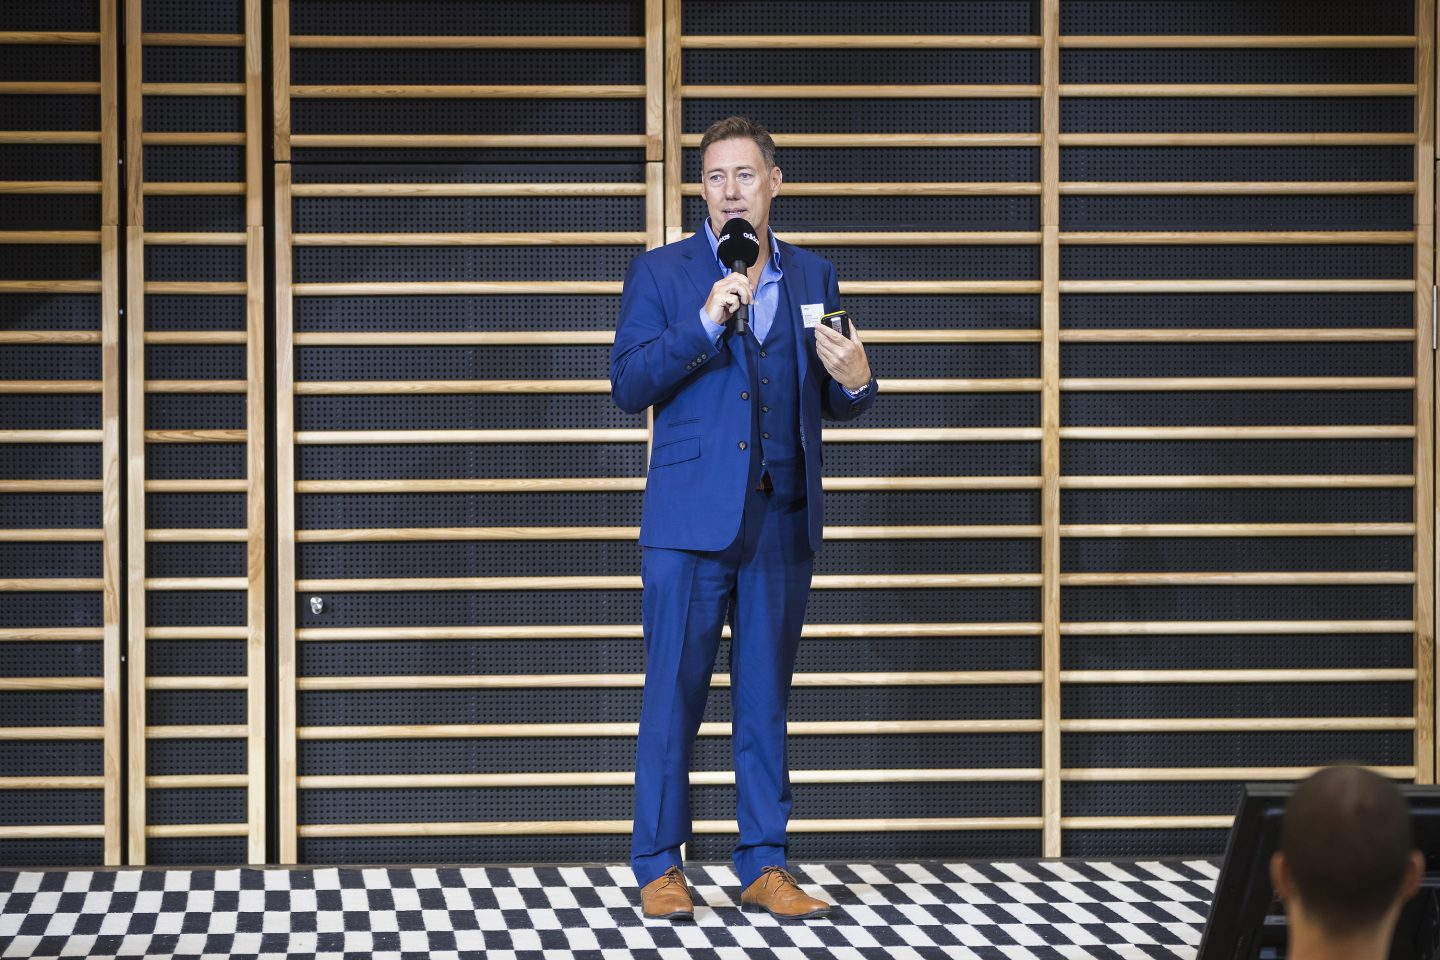 A man wearing a blue suit standing on stage and talking into a microphone. Nick Moloney, career, success, mindset, motivation, adidas HQ, GamePlan A